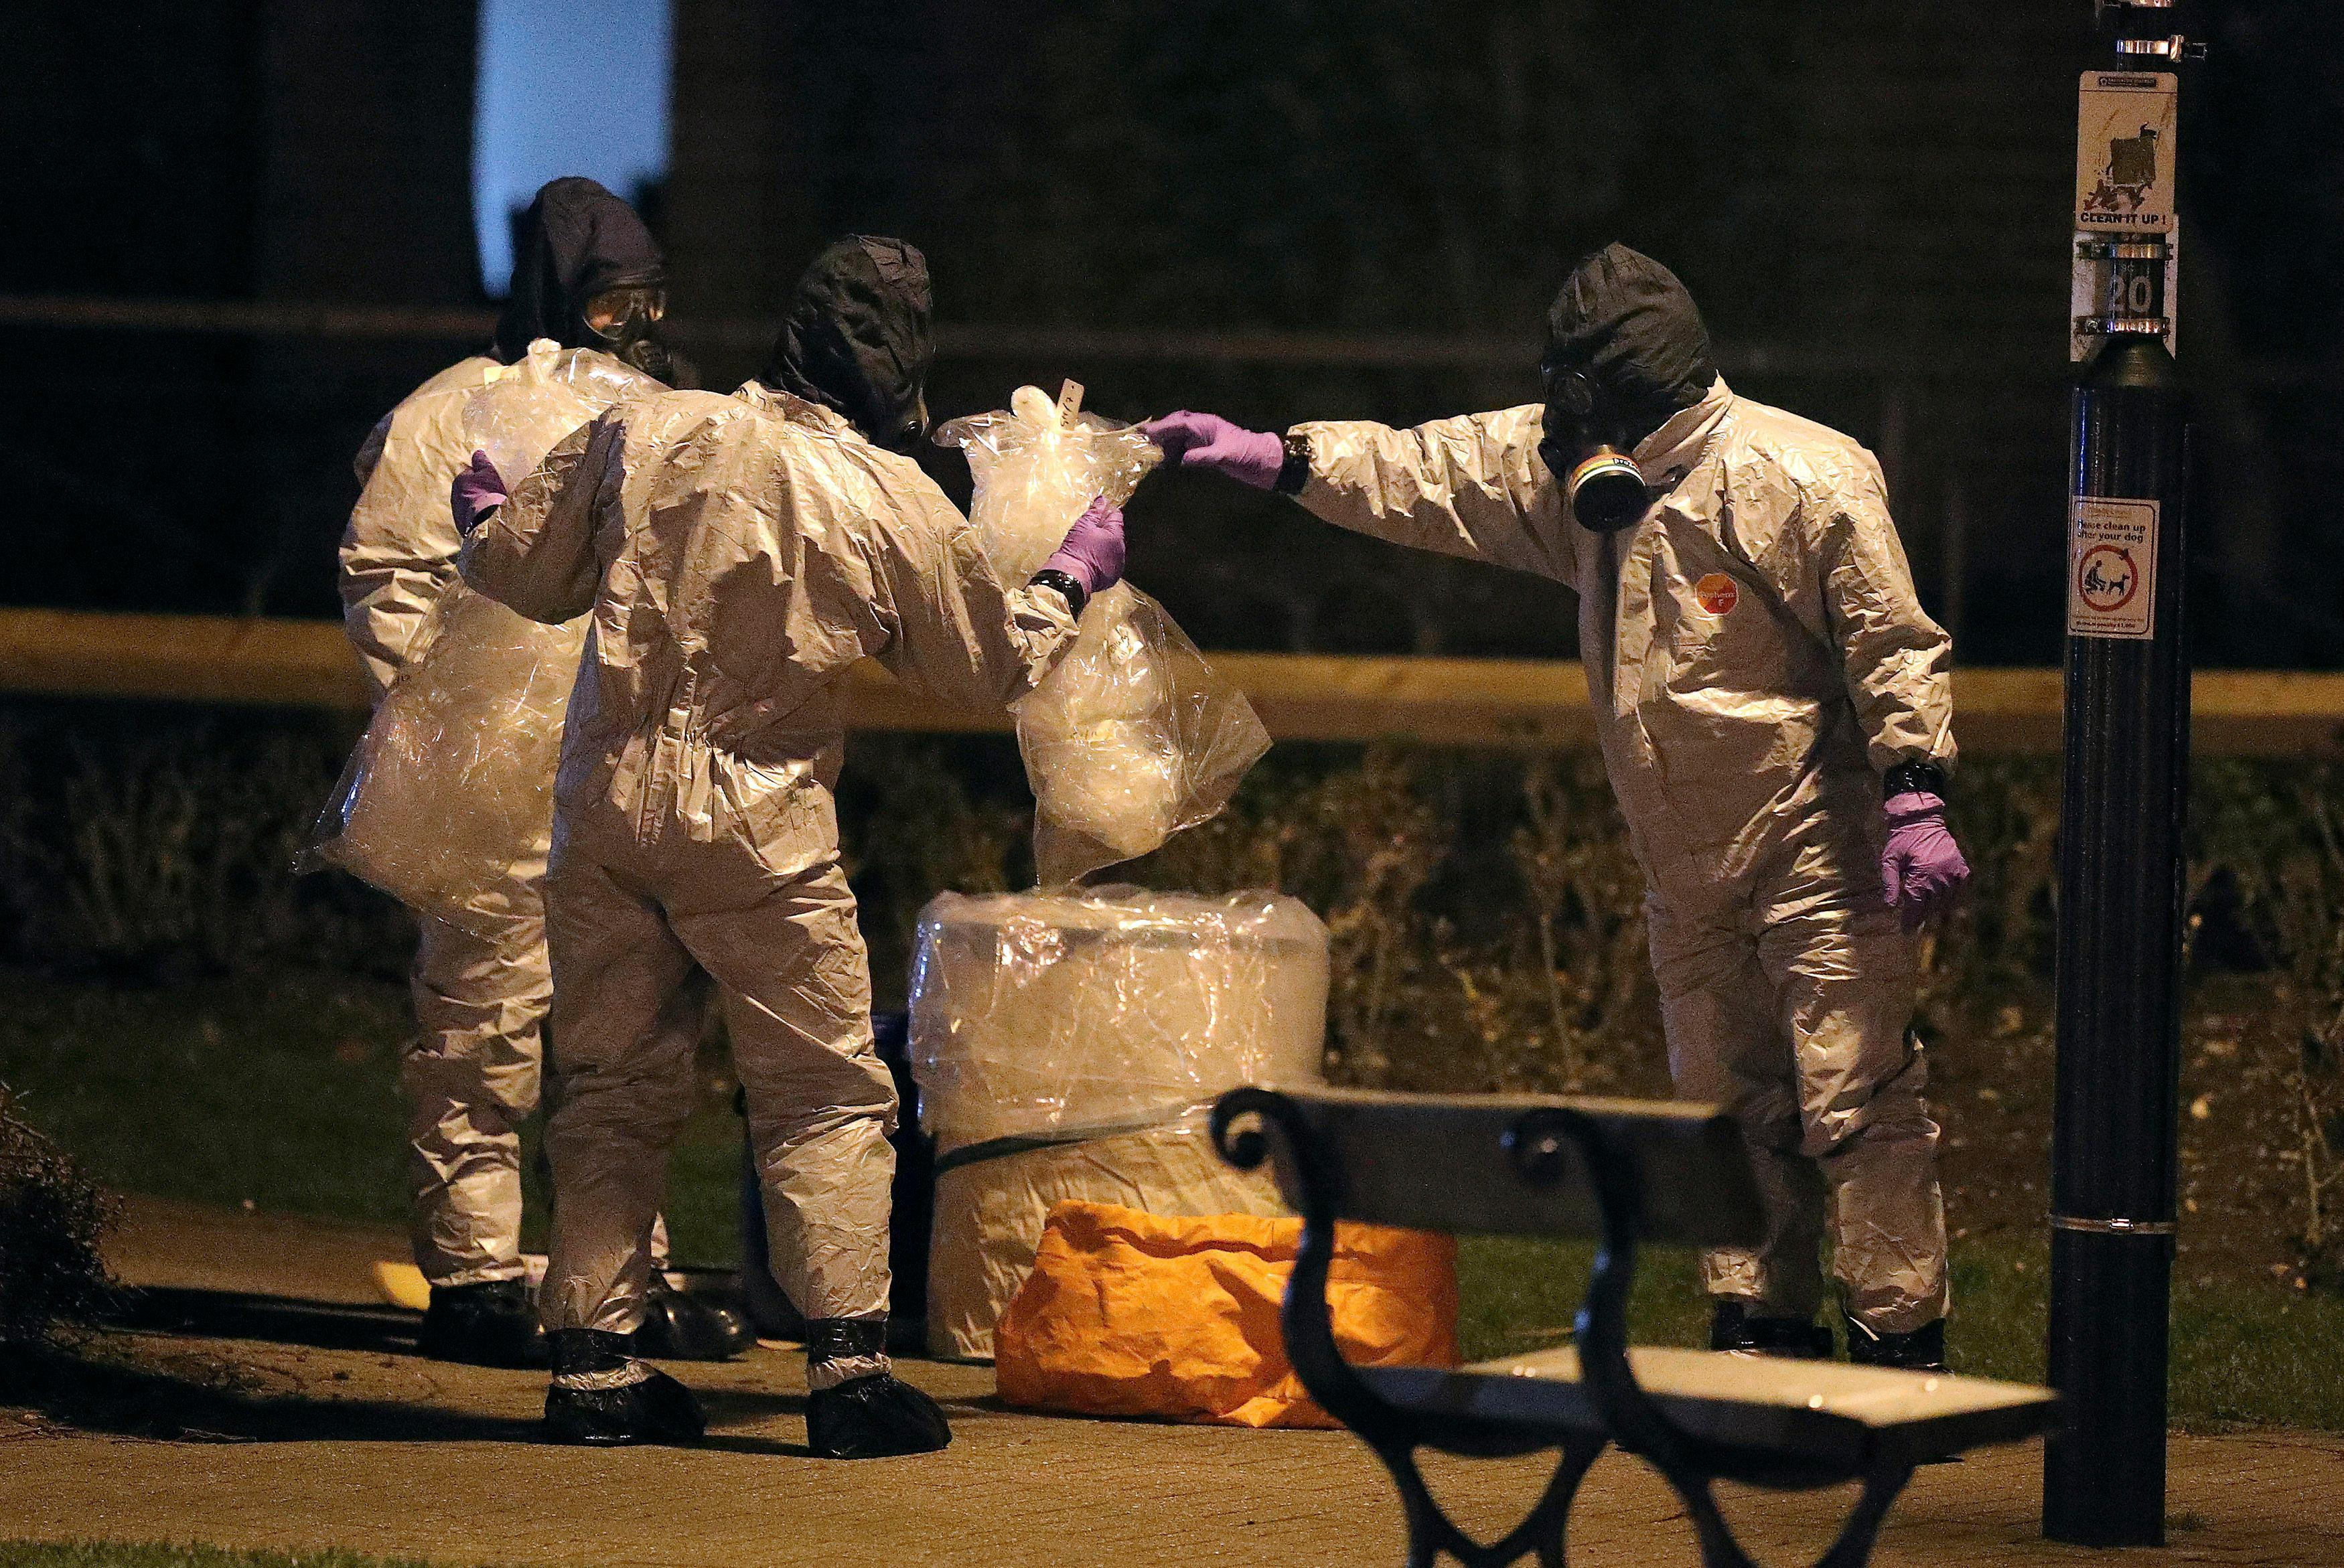 "Investigators in protective suits work at the scene in the Maltings shopping centre in Salisbury, England, Tuesday, March 13, 2018. The use of Russian-developed nerve agent Novichok to poison ex-spy Sergei Skripal and his daughter makes it ""highly likely"" that Russia was involved, British Prime Minister Theresa May said Monday. Novichok refers to a class of nerve agents developed in the Soviet Union near the end of the Cold War.(Andrew Matthews/PA via AP)"